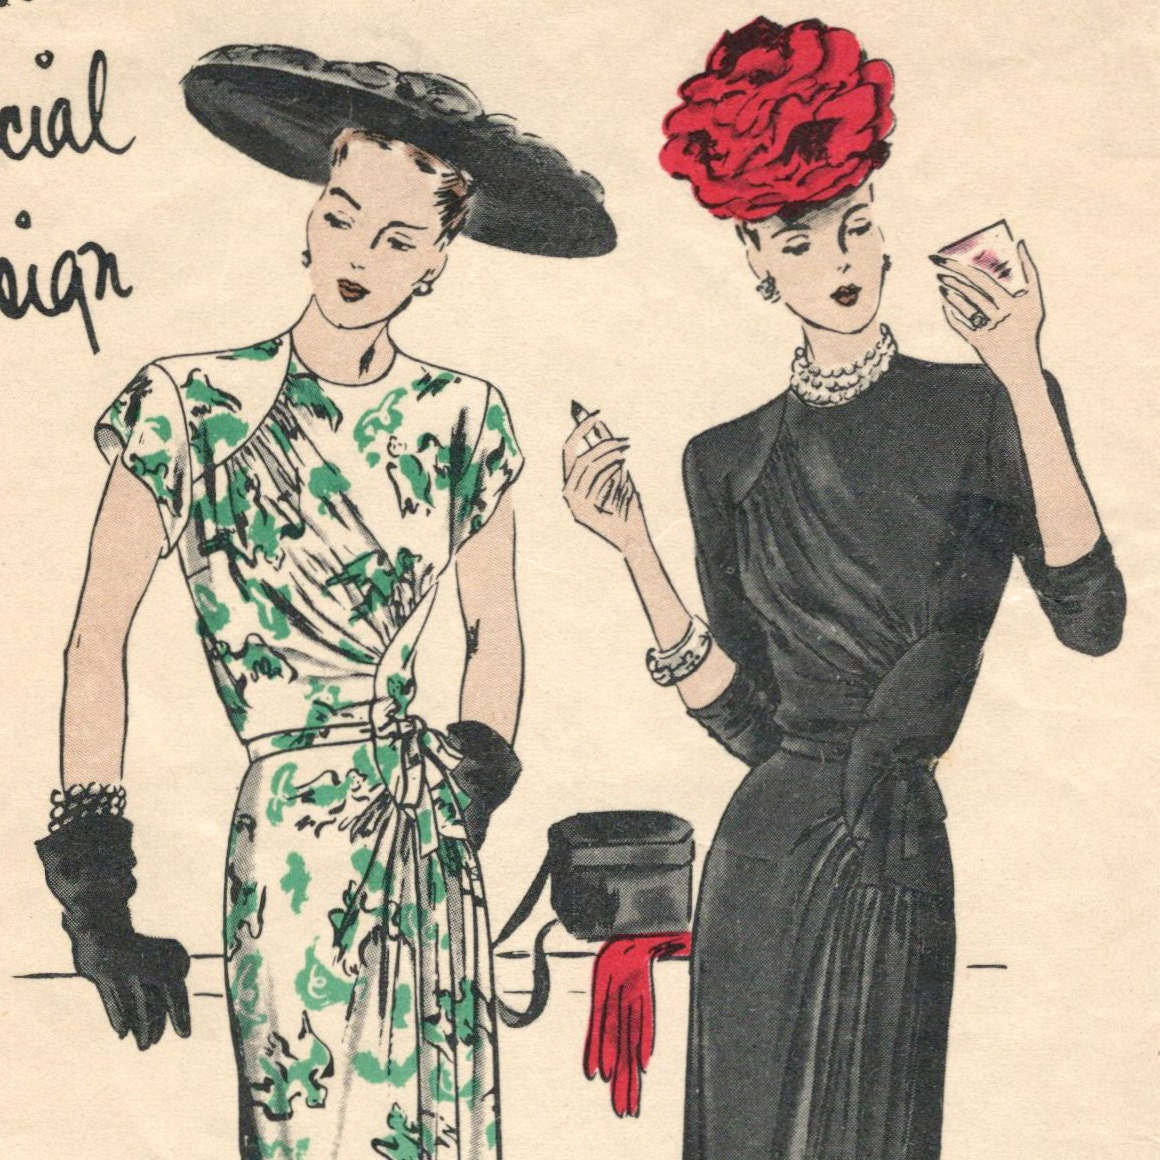 Vogue S-4641 1940s cocktail dress pattern with hats!